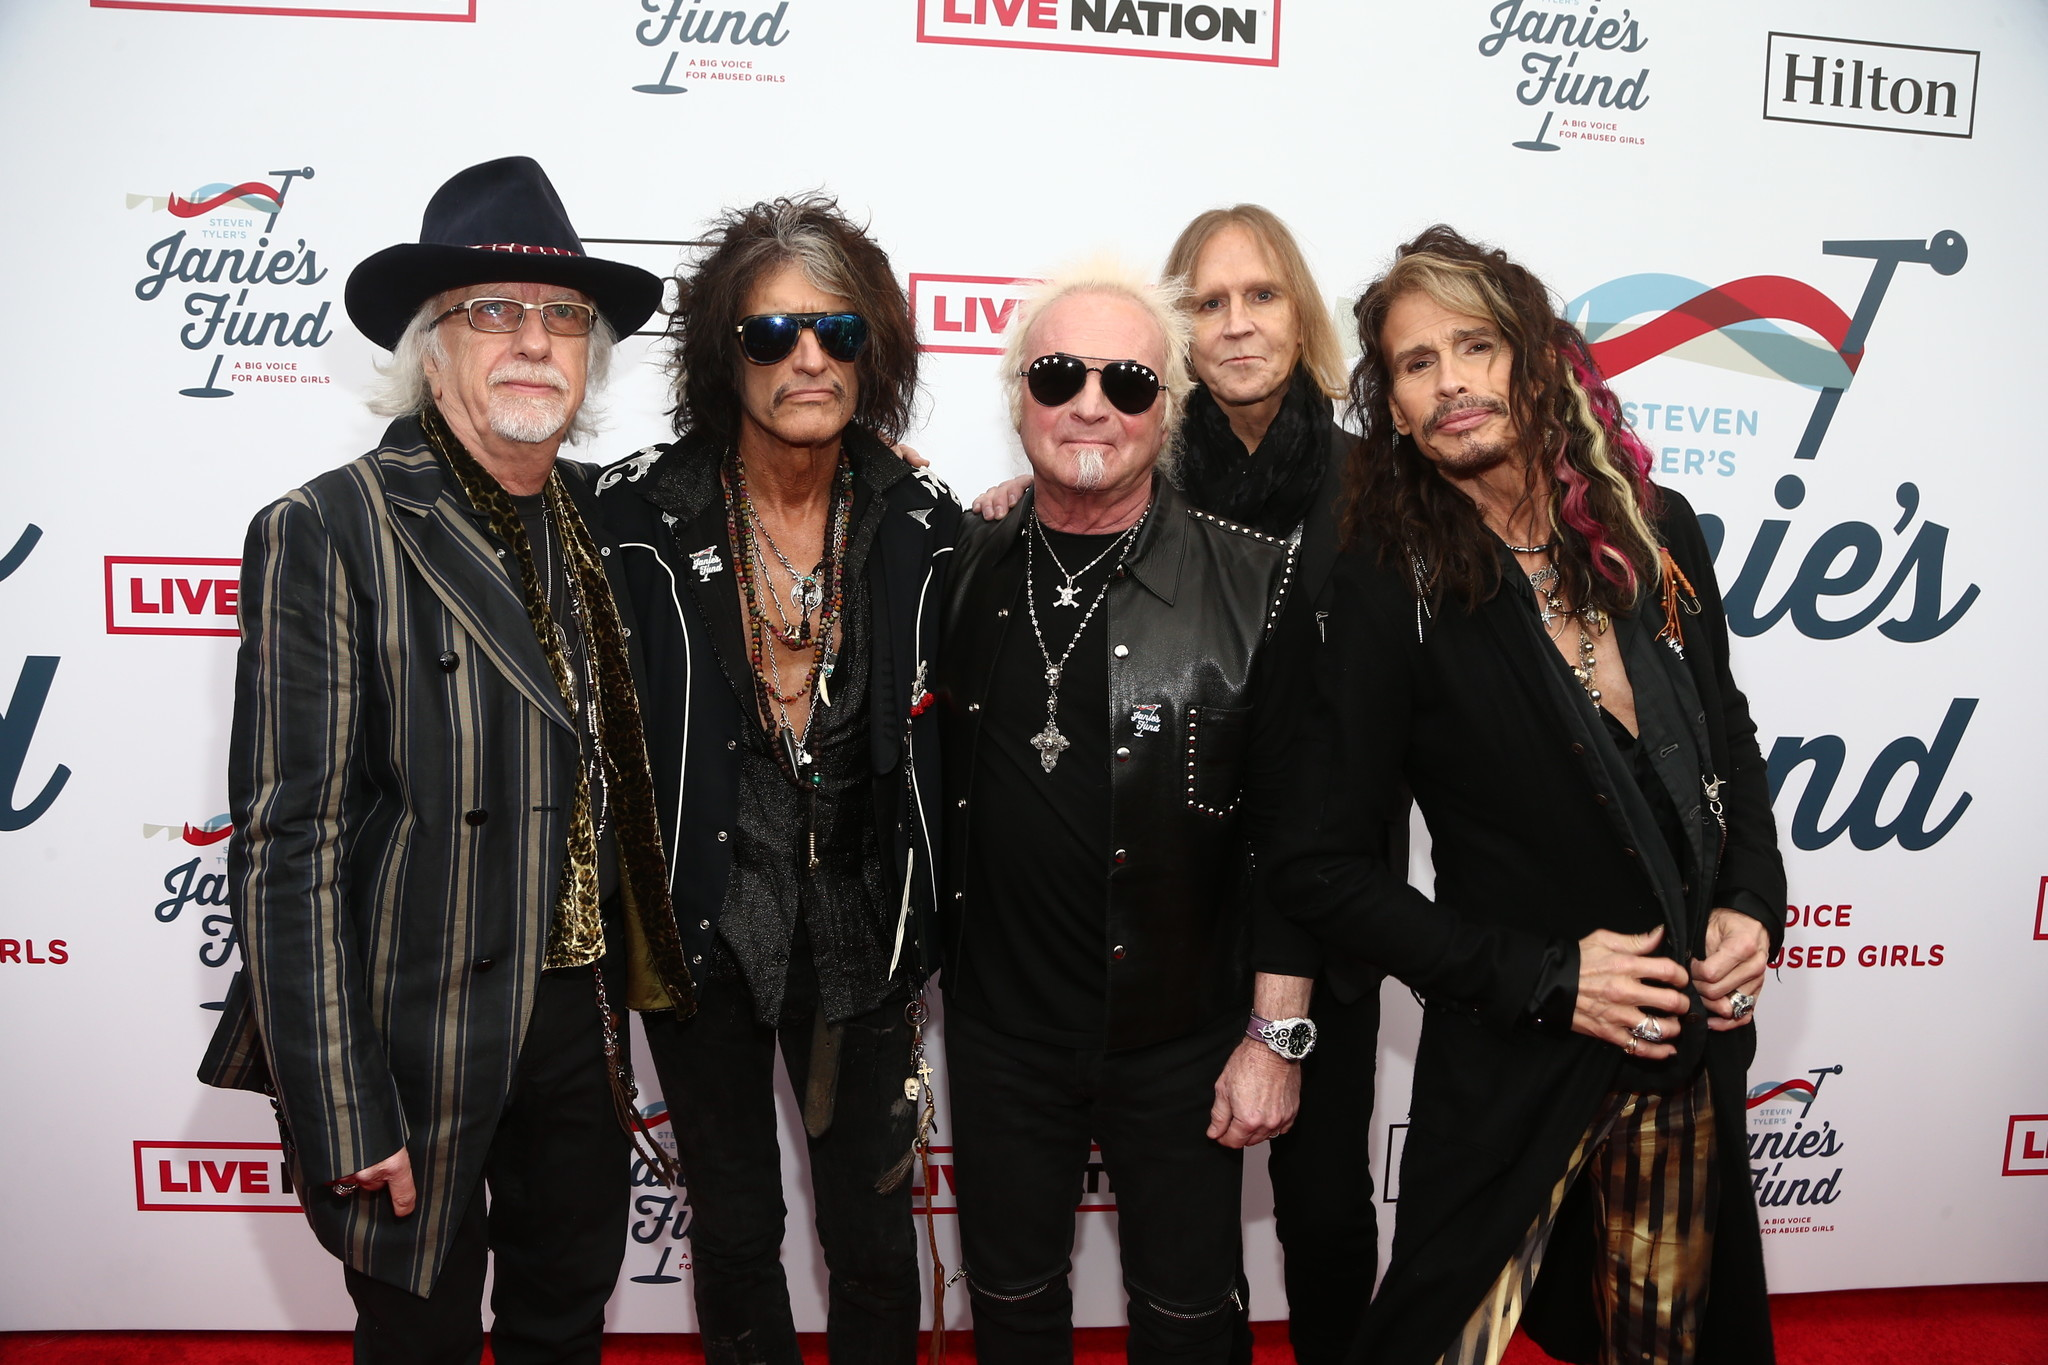 Aerosmith to receive Person of the Year award from MusiCares, which aids musicians in need